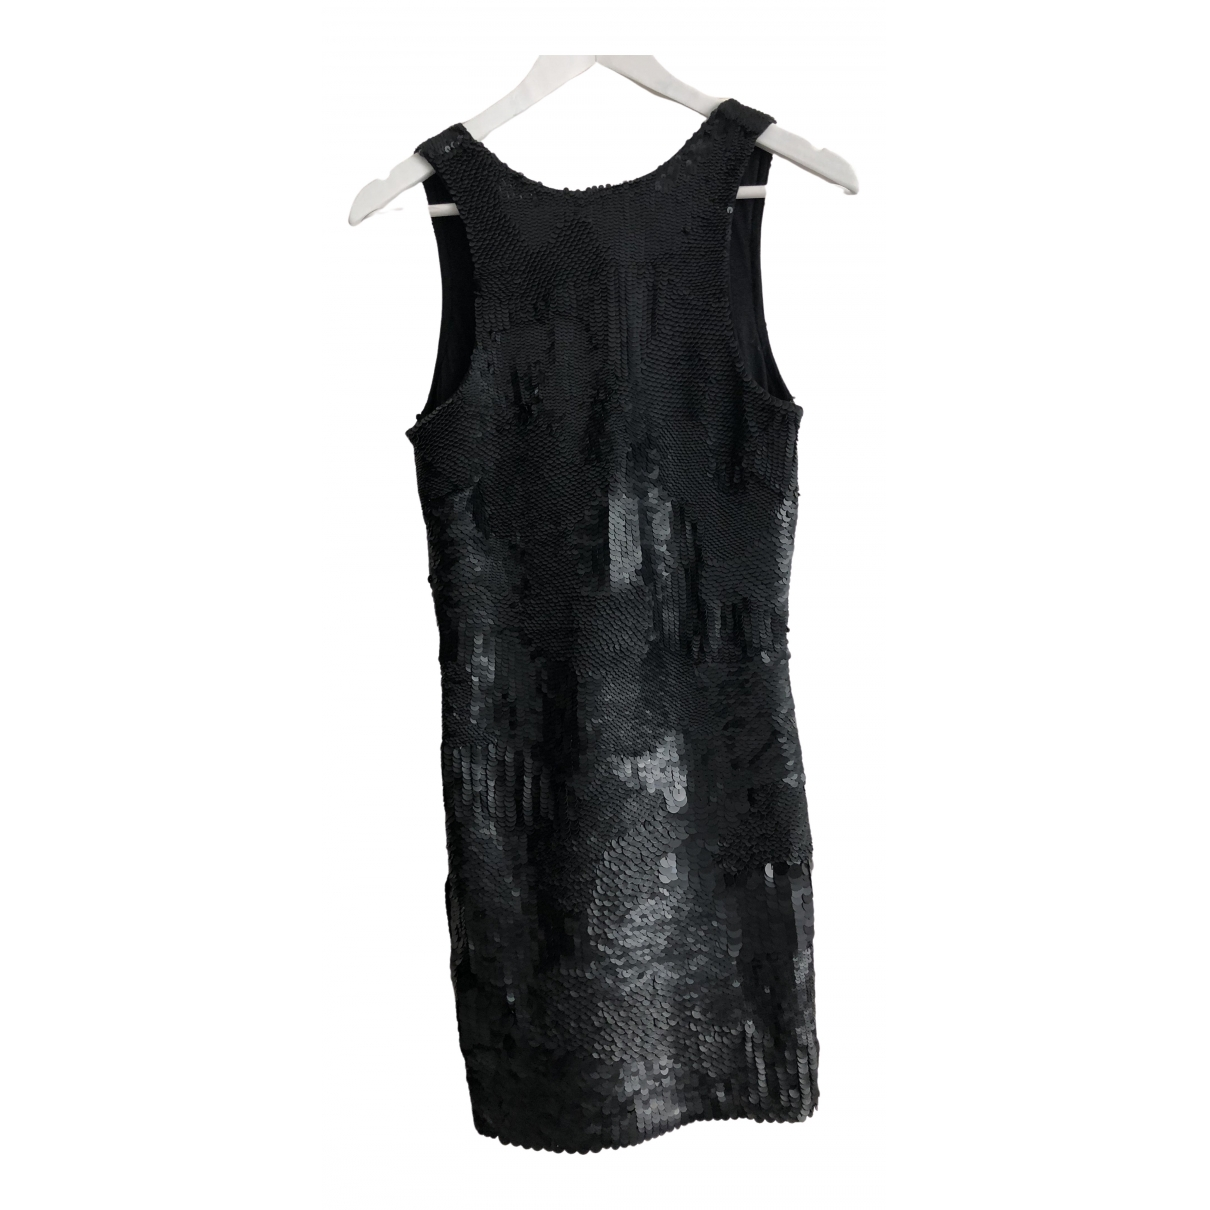 All Saints \N Black Glitter dress for Women 8 UK